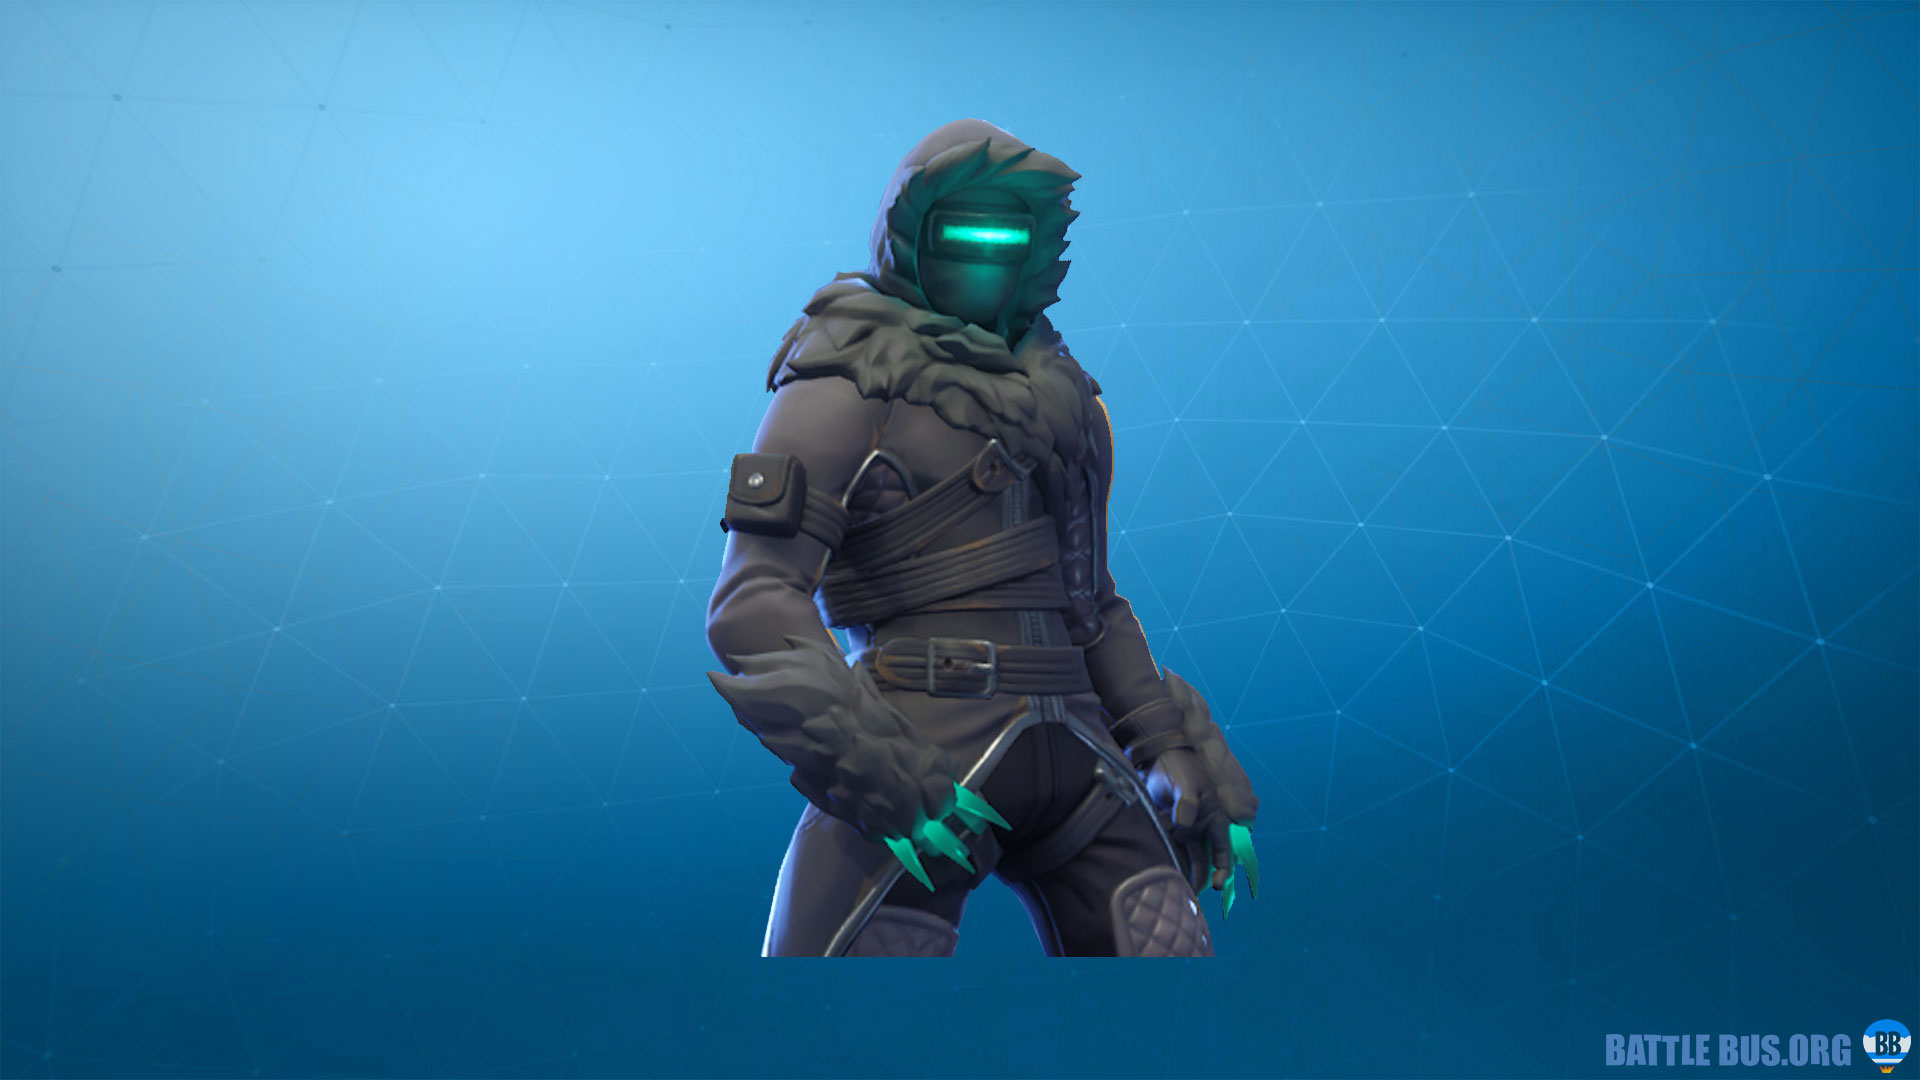 zenith fortnite skin hd - ninja fortnite costume